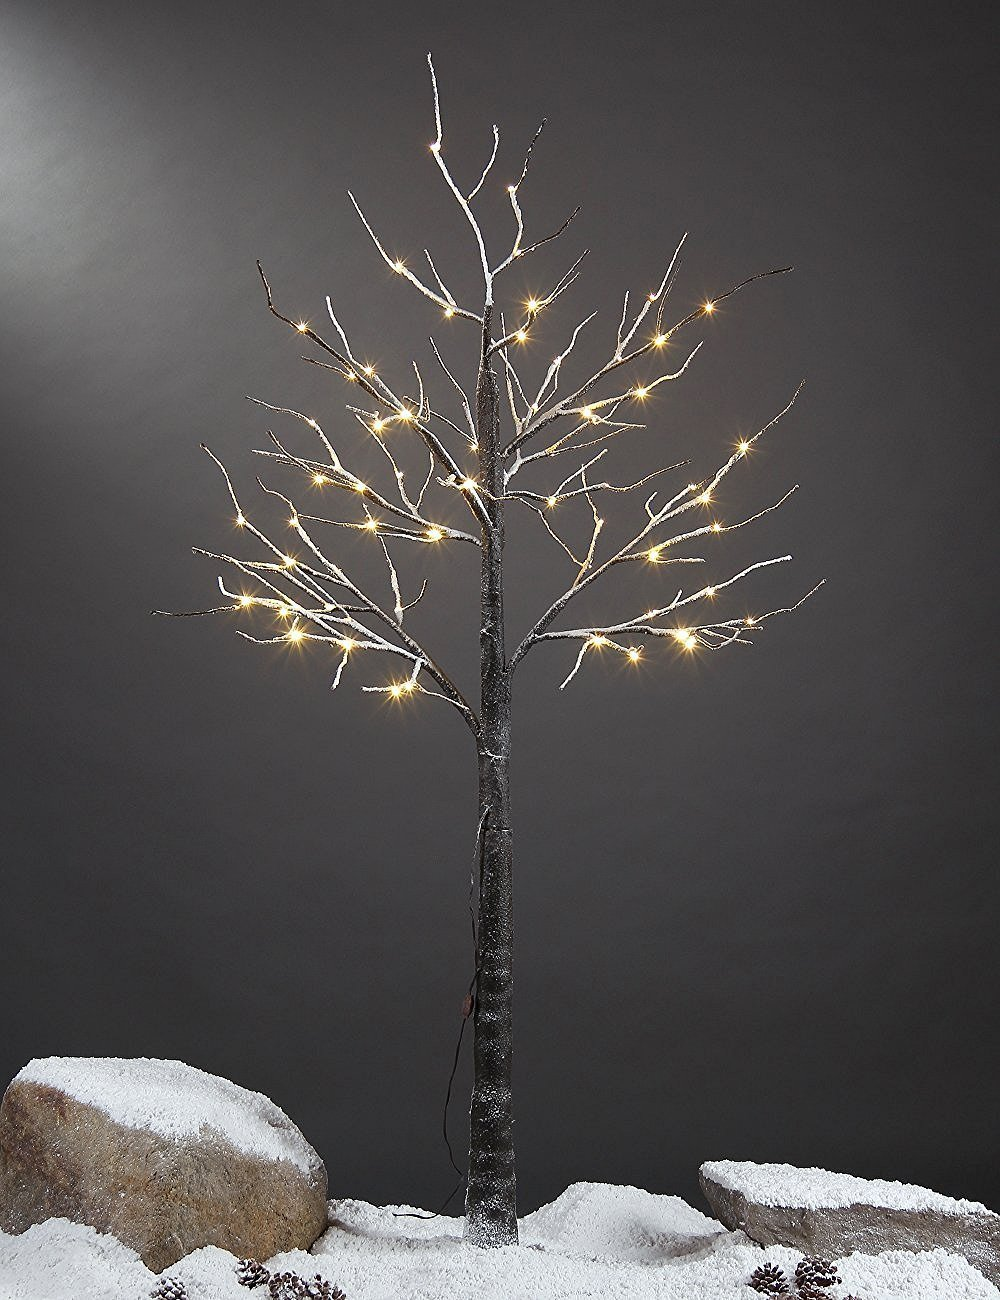 Amazon.com  Lightshare 5 Feet Snow Dusted Tree 72 LED Lights Warm White For Christmas Tree and Christmas Village Decoration Decoration Idea for Home ... & Amazon.com : Lightshare 5 Feet Snow Dusted Tree 72 LED Lights Warm ...